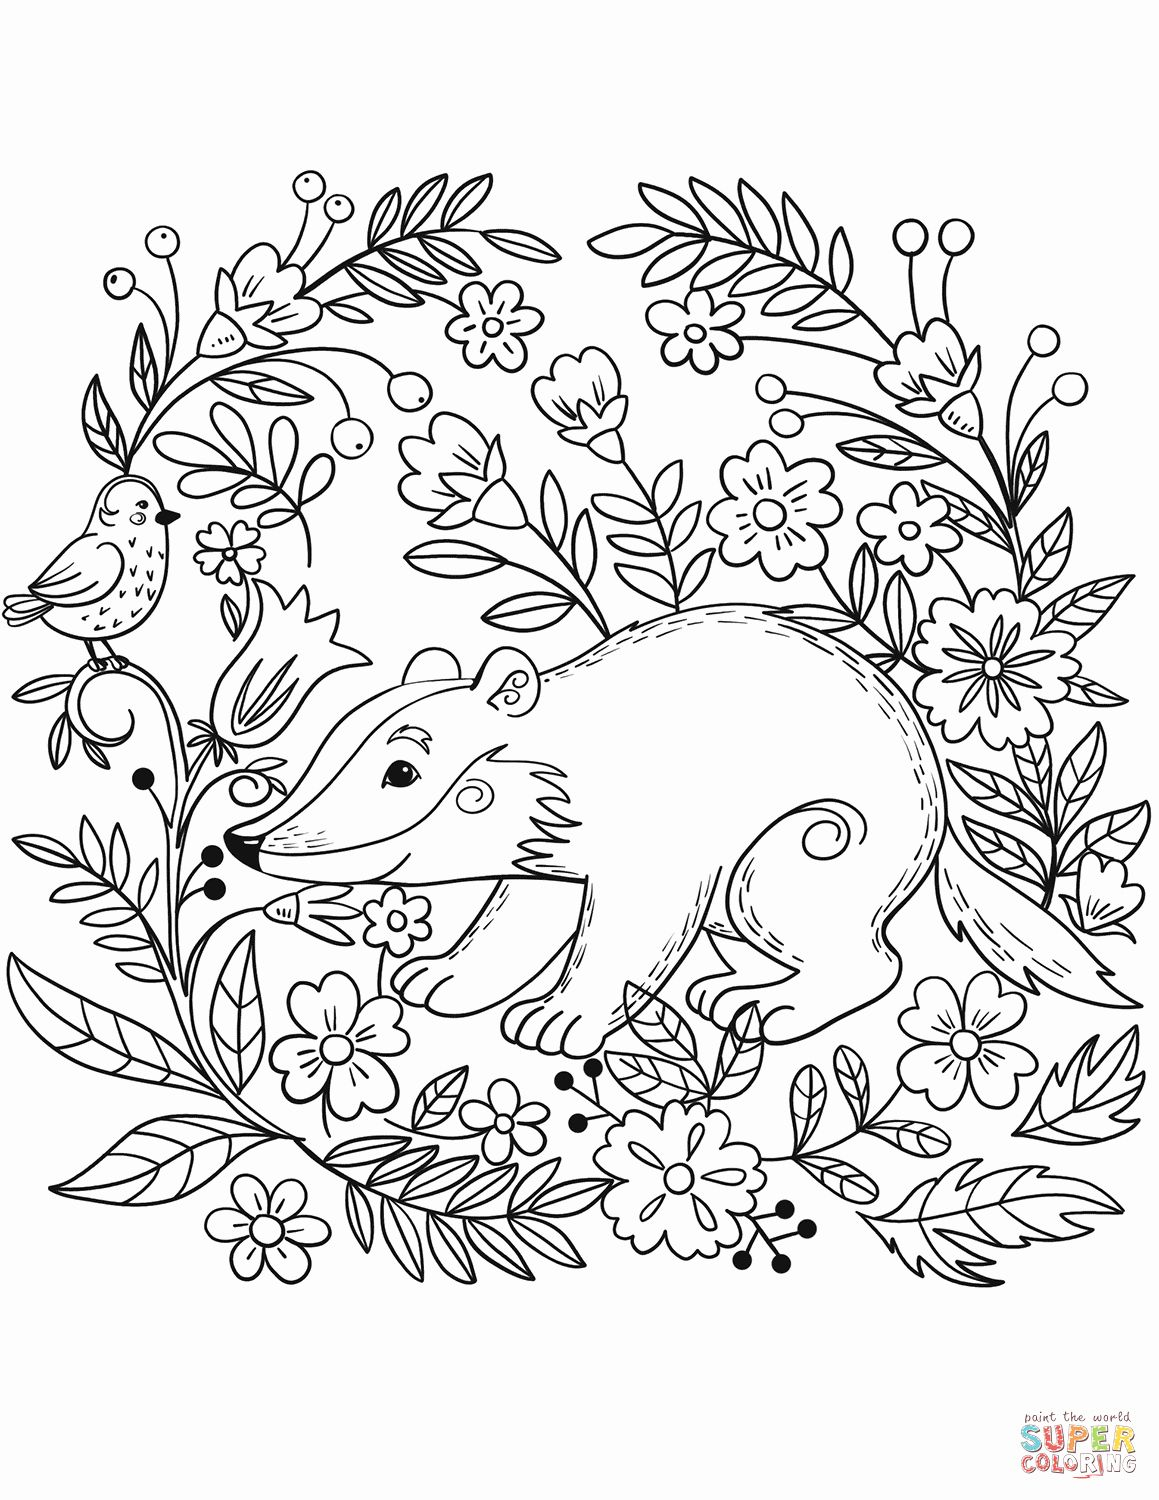 nocturnal animals colouring nocturnal animals coloring page twisty noodle nocturnal animals colouring